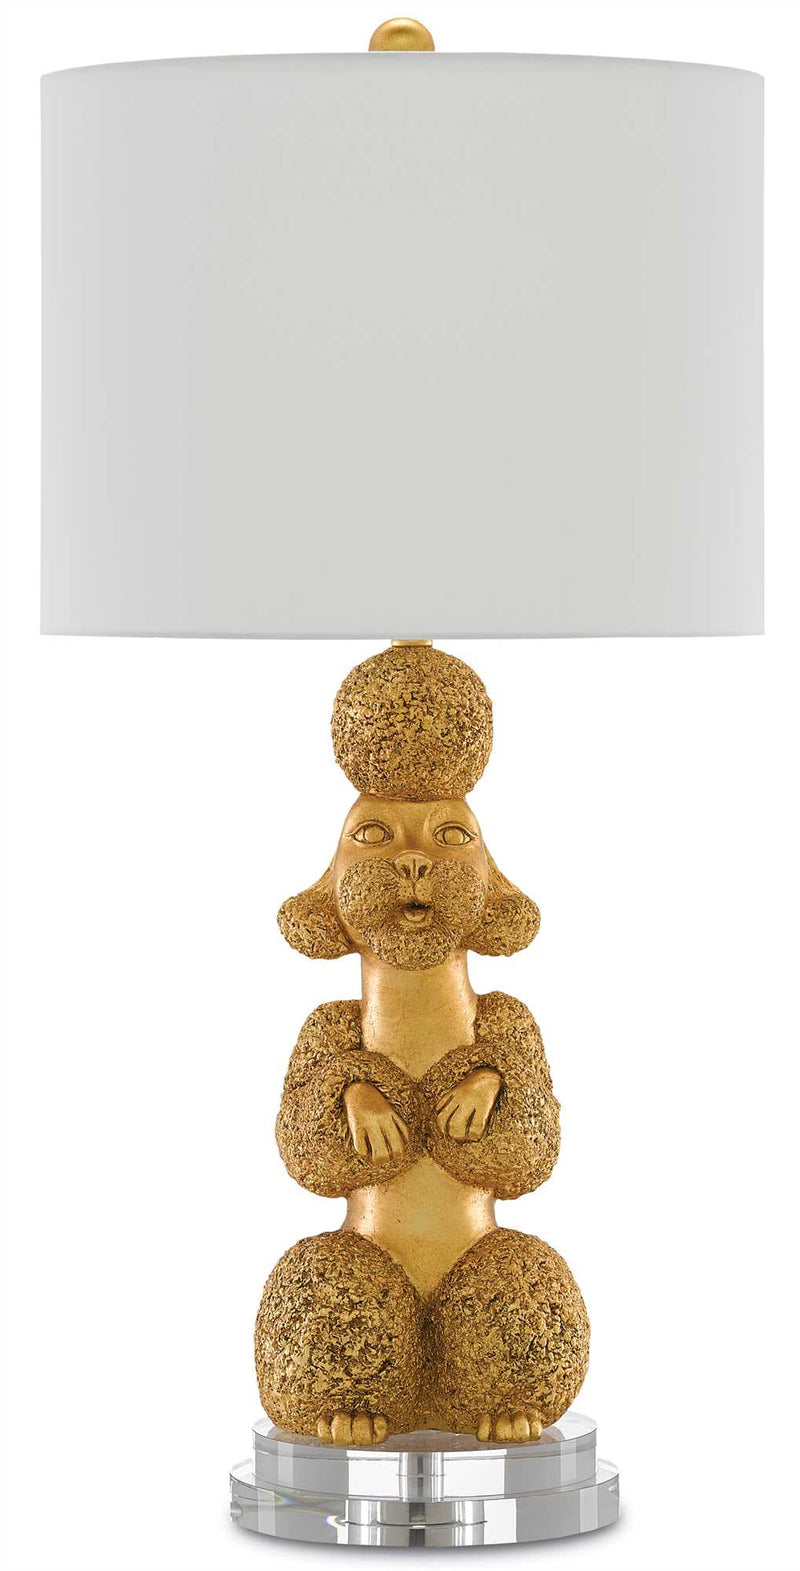 CORNERSTONE HOME INTERIORS - LIGHTING - MS. POODLE GOLD TABLE LAMP